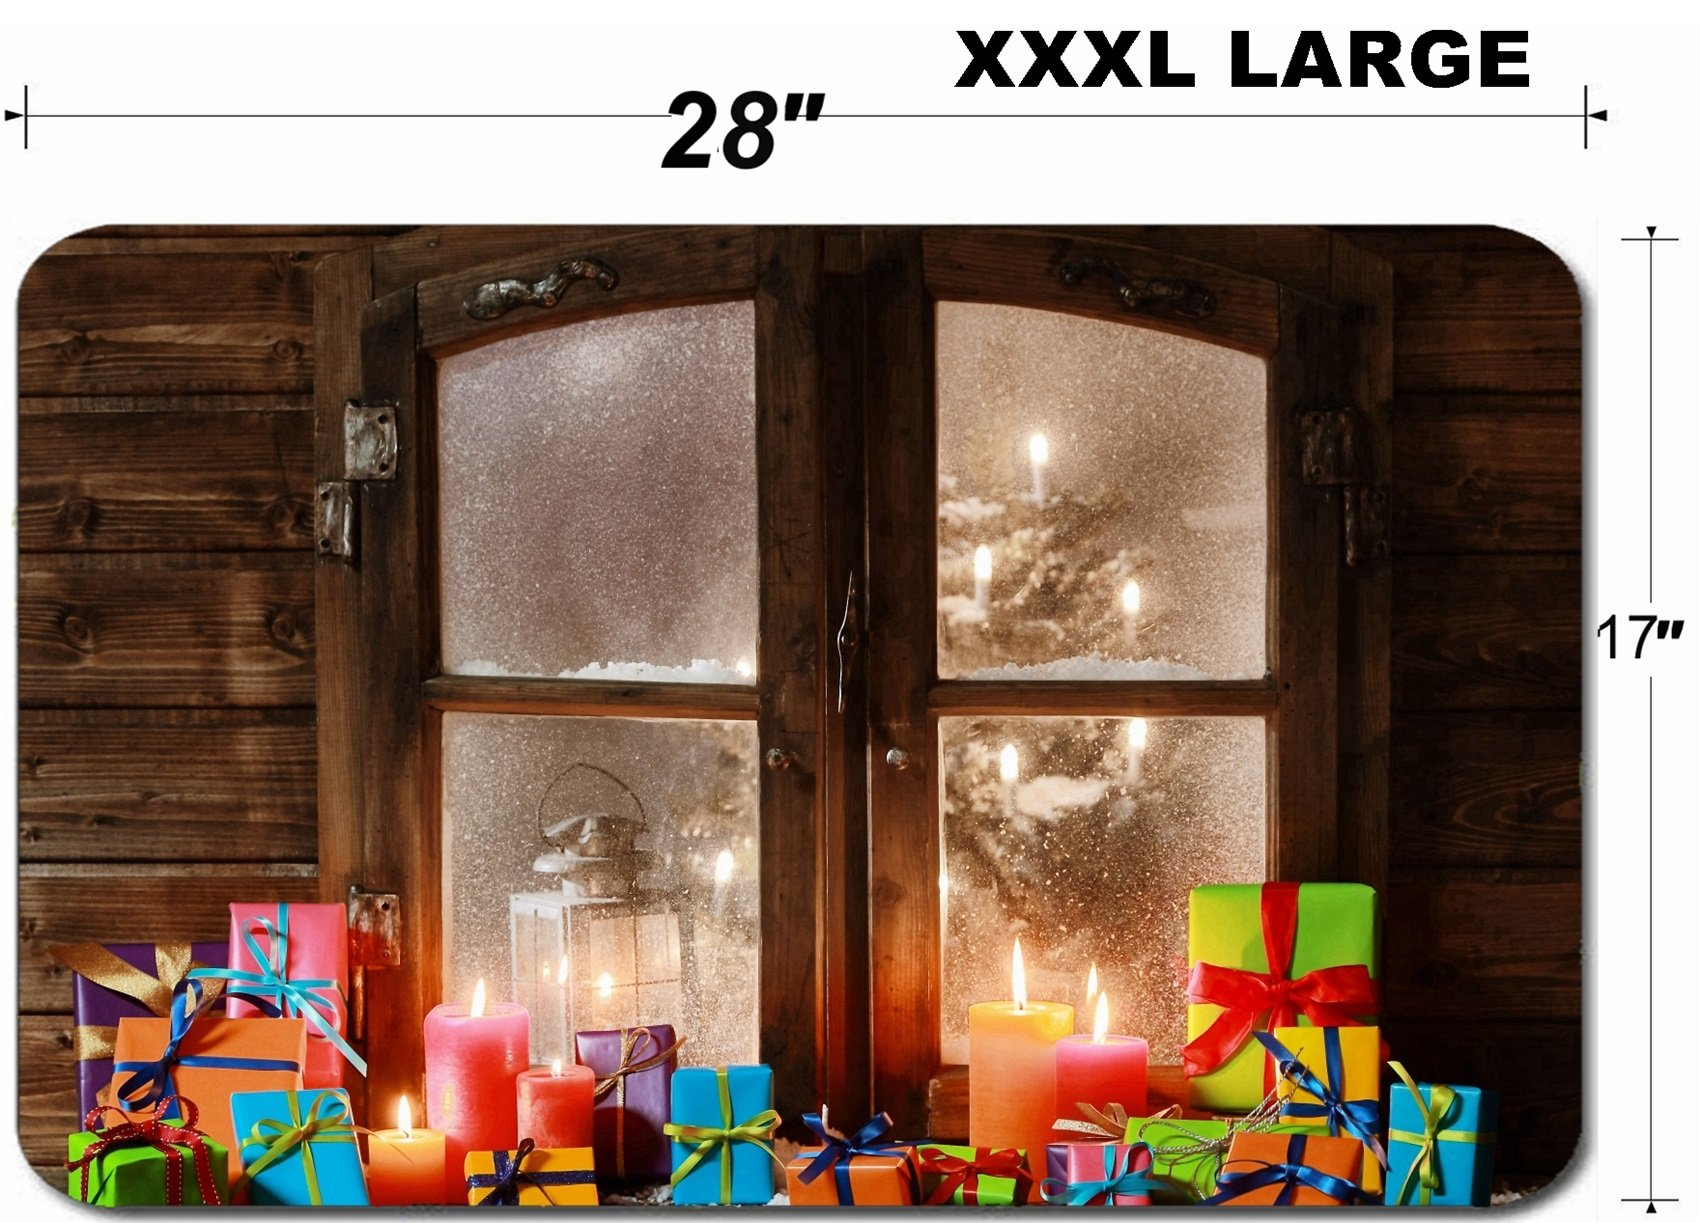 Liili Large Table Mat Non-Slip Natural Rubber Desk Pads IMAGE ID 32444512 Various Colored Christmas Presents and Lighted Candles at Vintage Window Pane